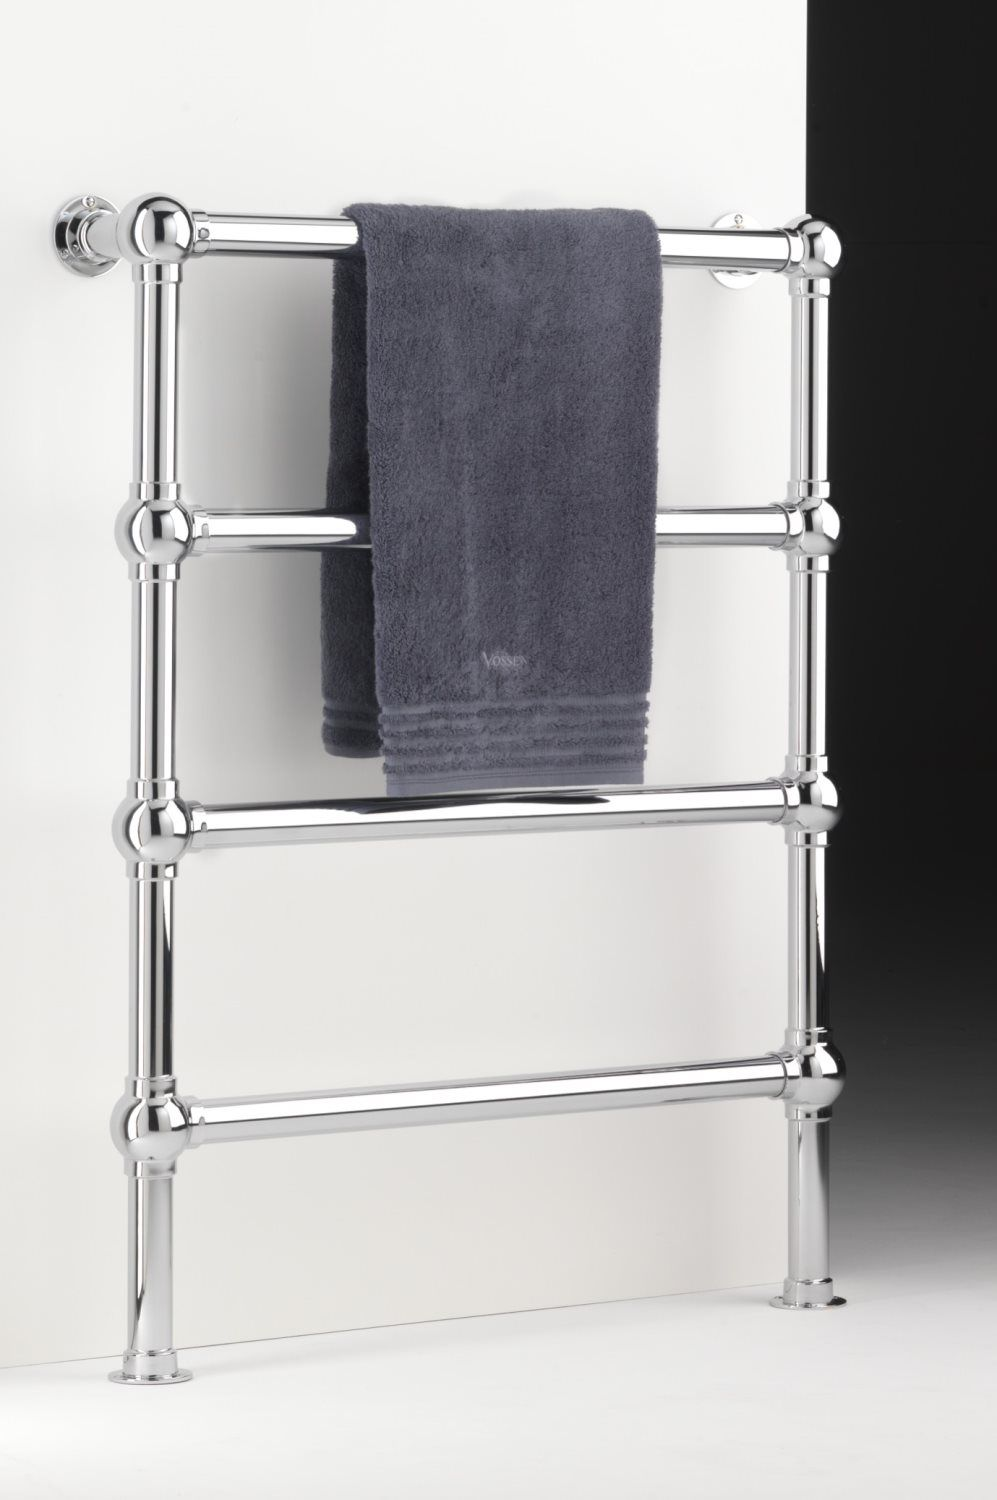 Bathroom radiators towel rails it is represent classic rectangular - Heated Towel Rail Blakedown Design Constructed In Chunky 38mm Tube Floor Mounted Joints